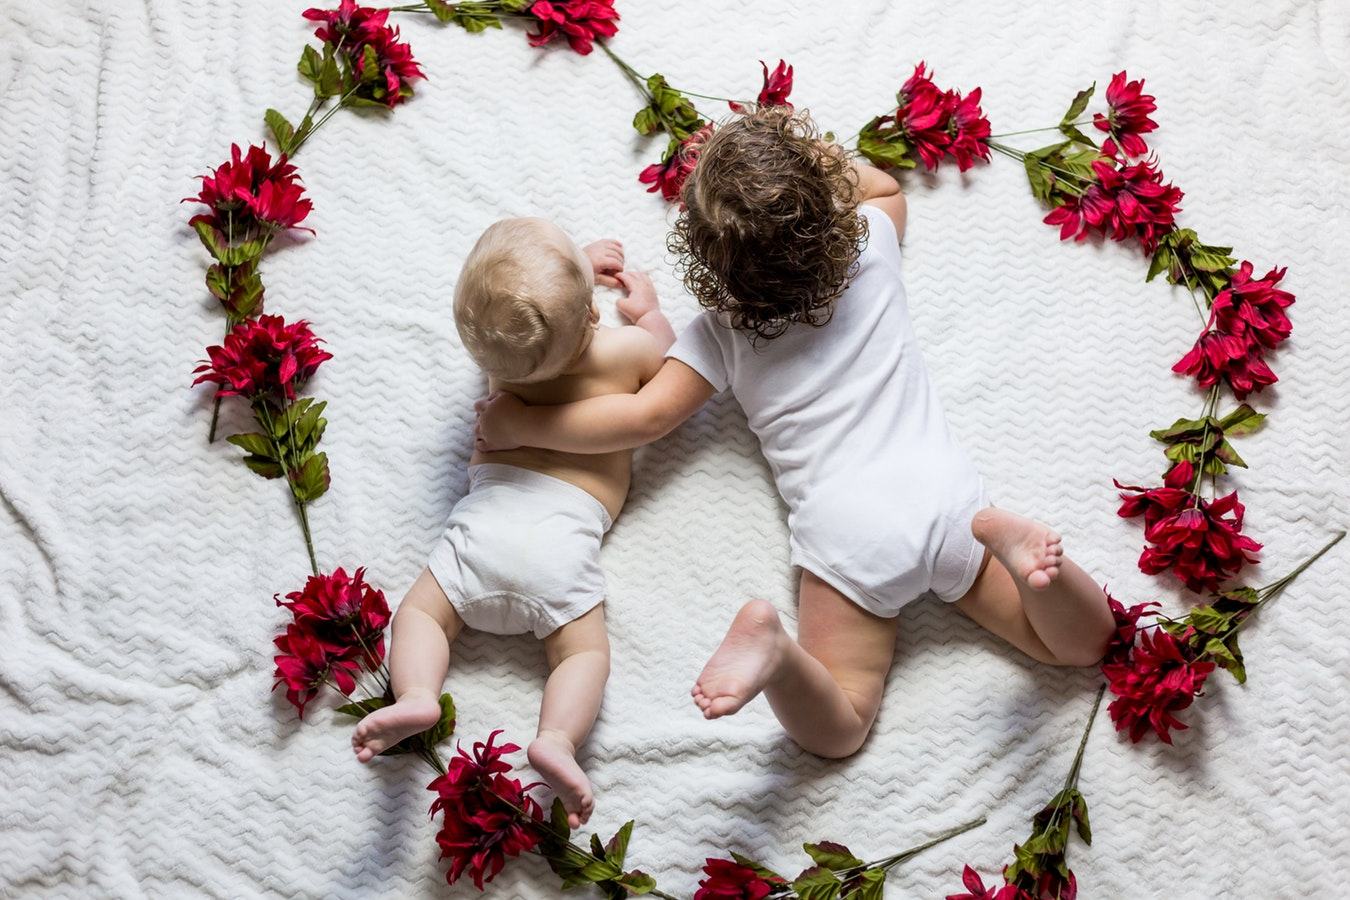 Babies with flowers